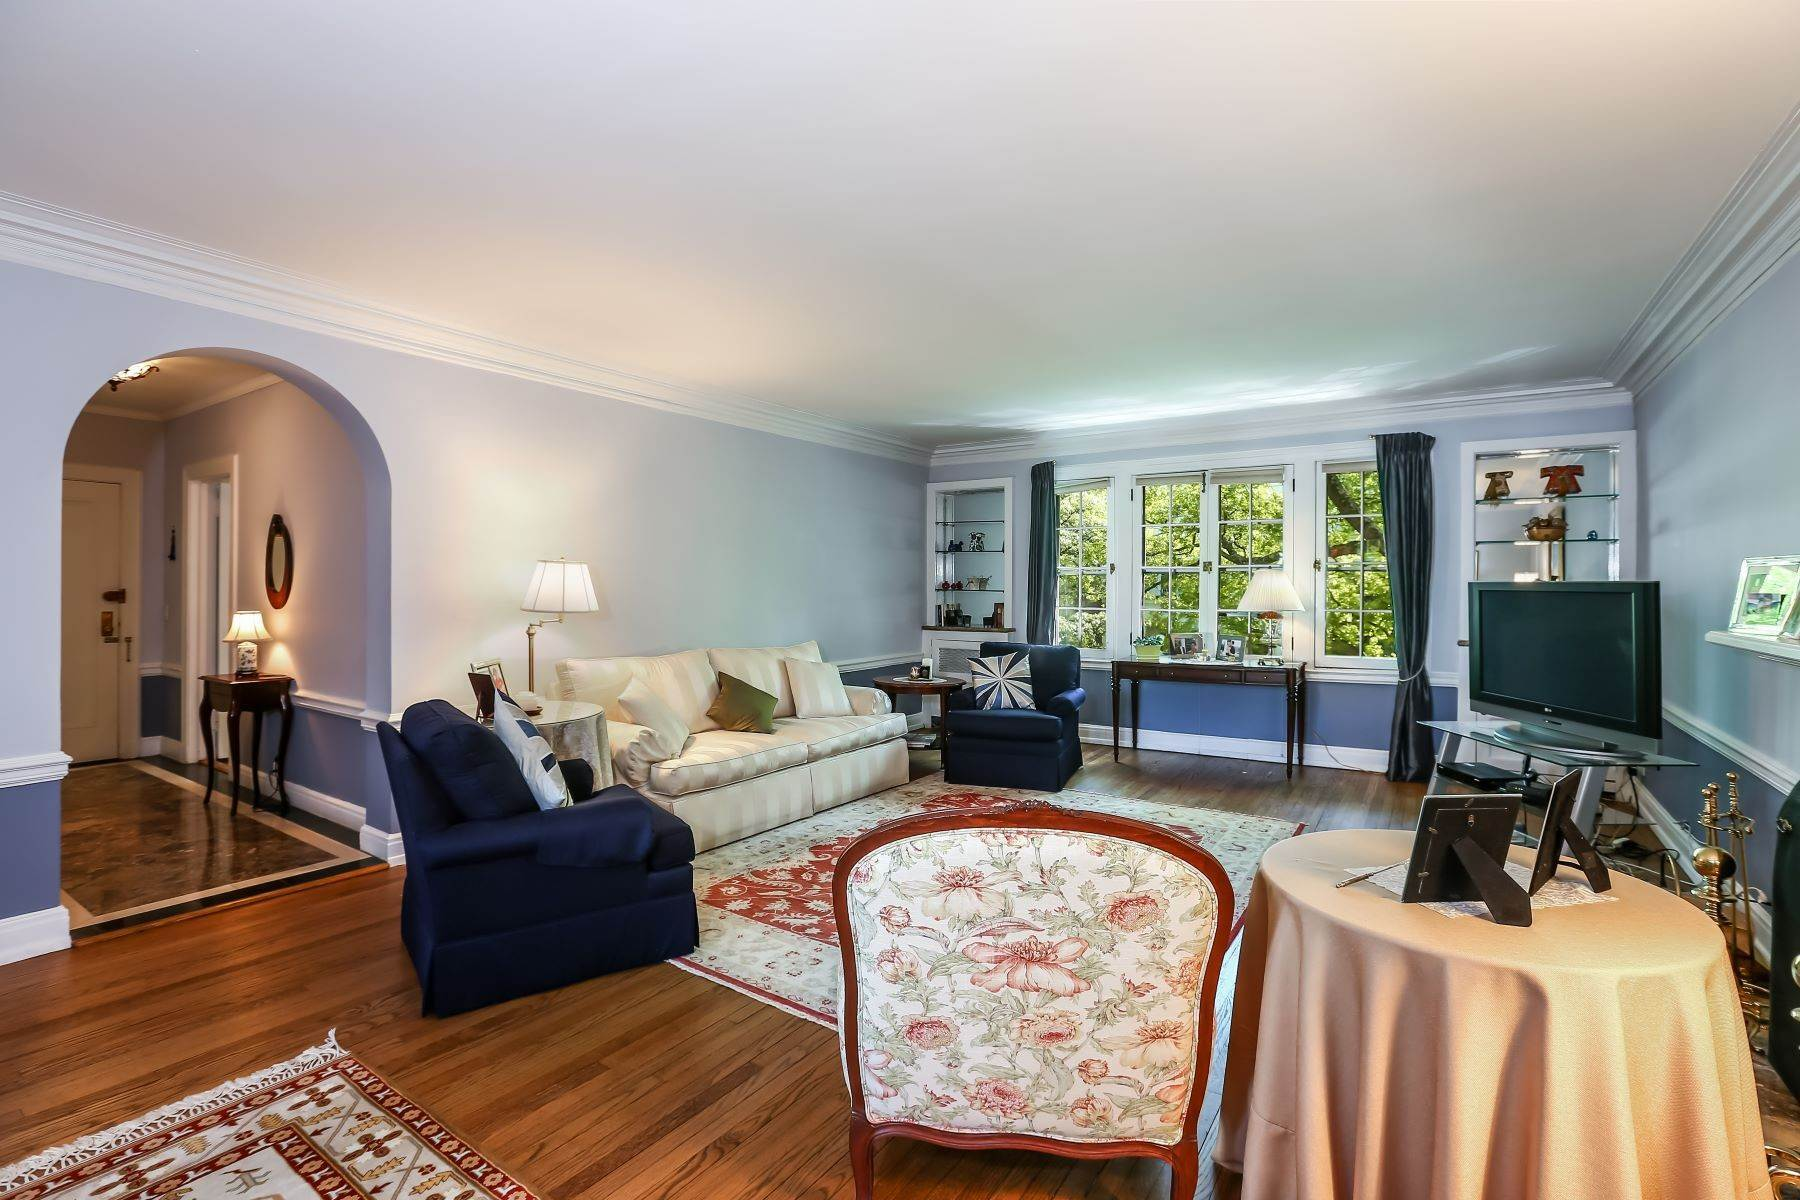 Single Family Homes for Sale at Sought After Pre-War Building 10 Brooklands, 4E Bronxville, New York 10708 United States